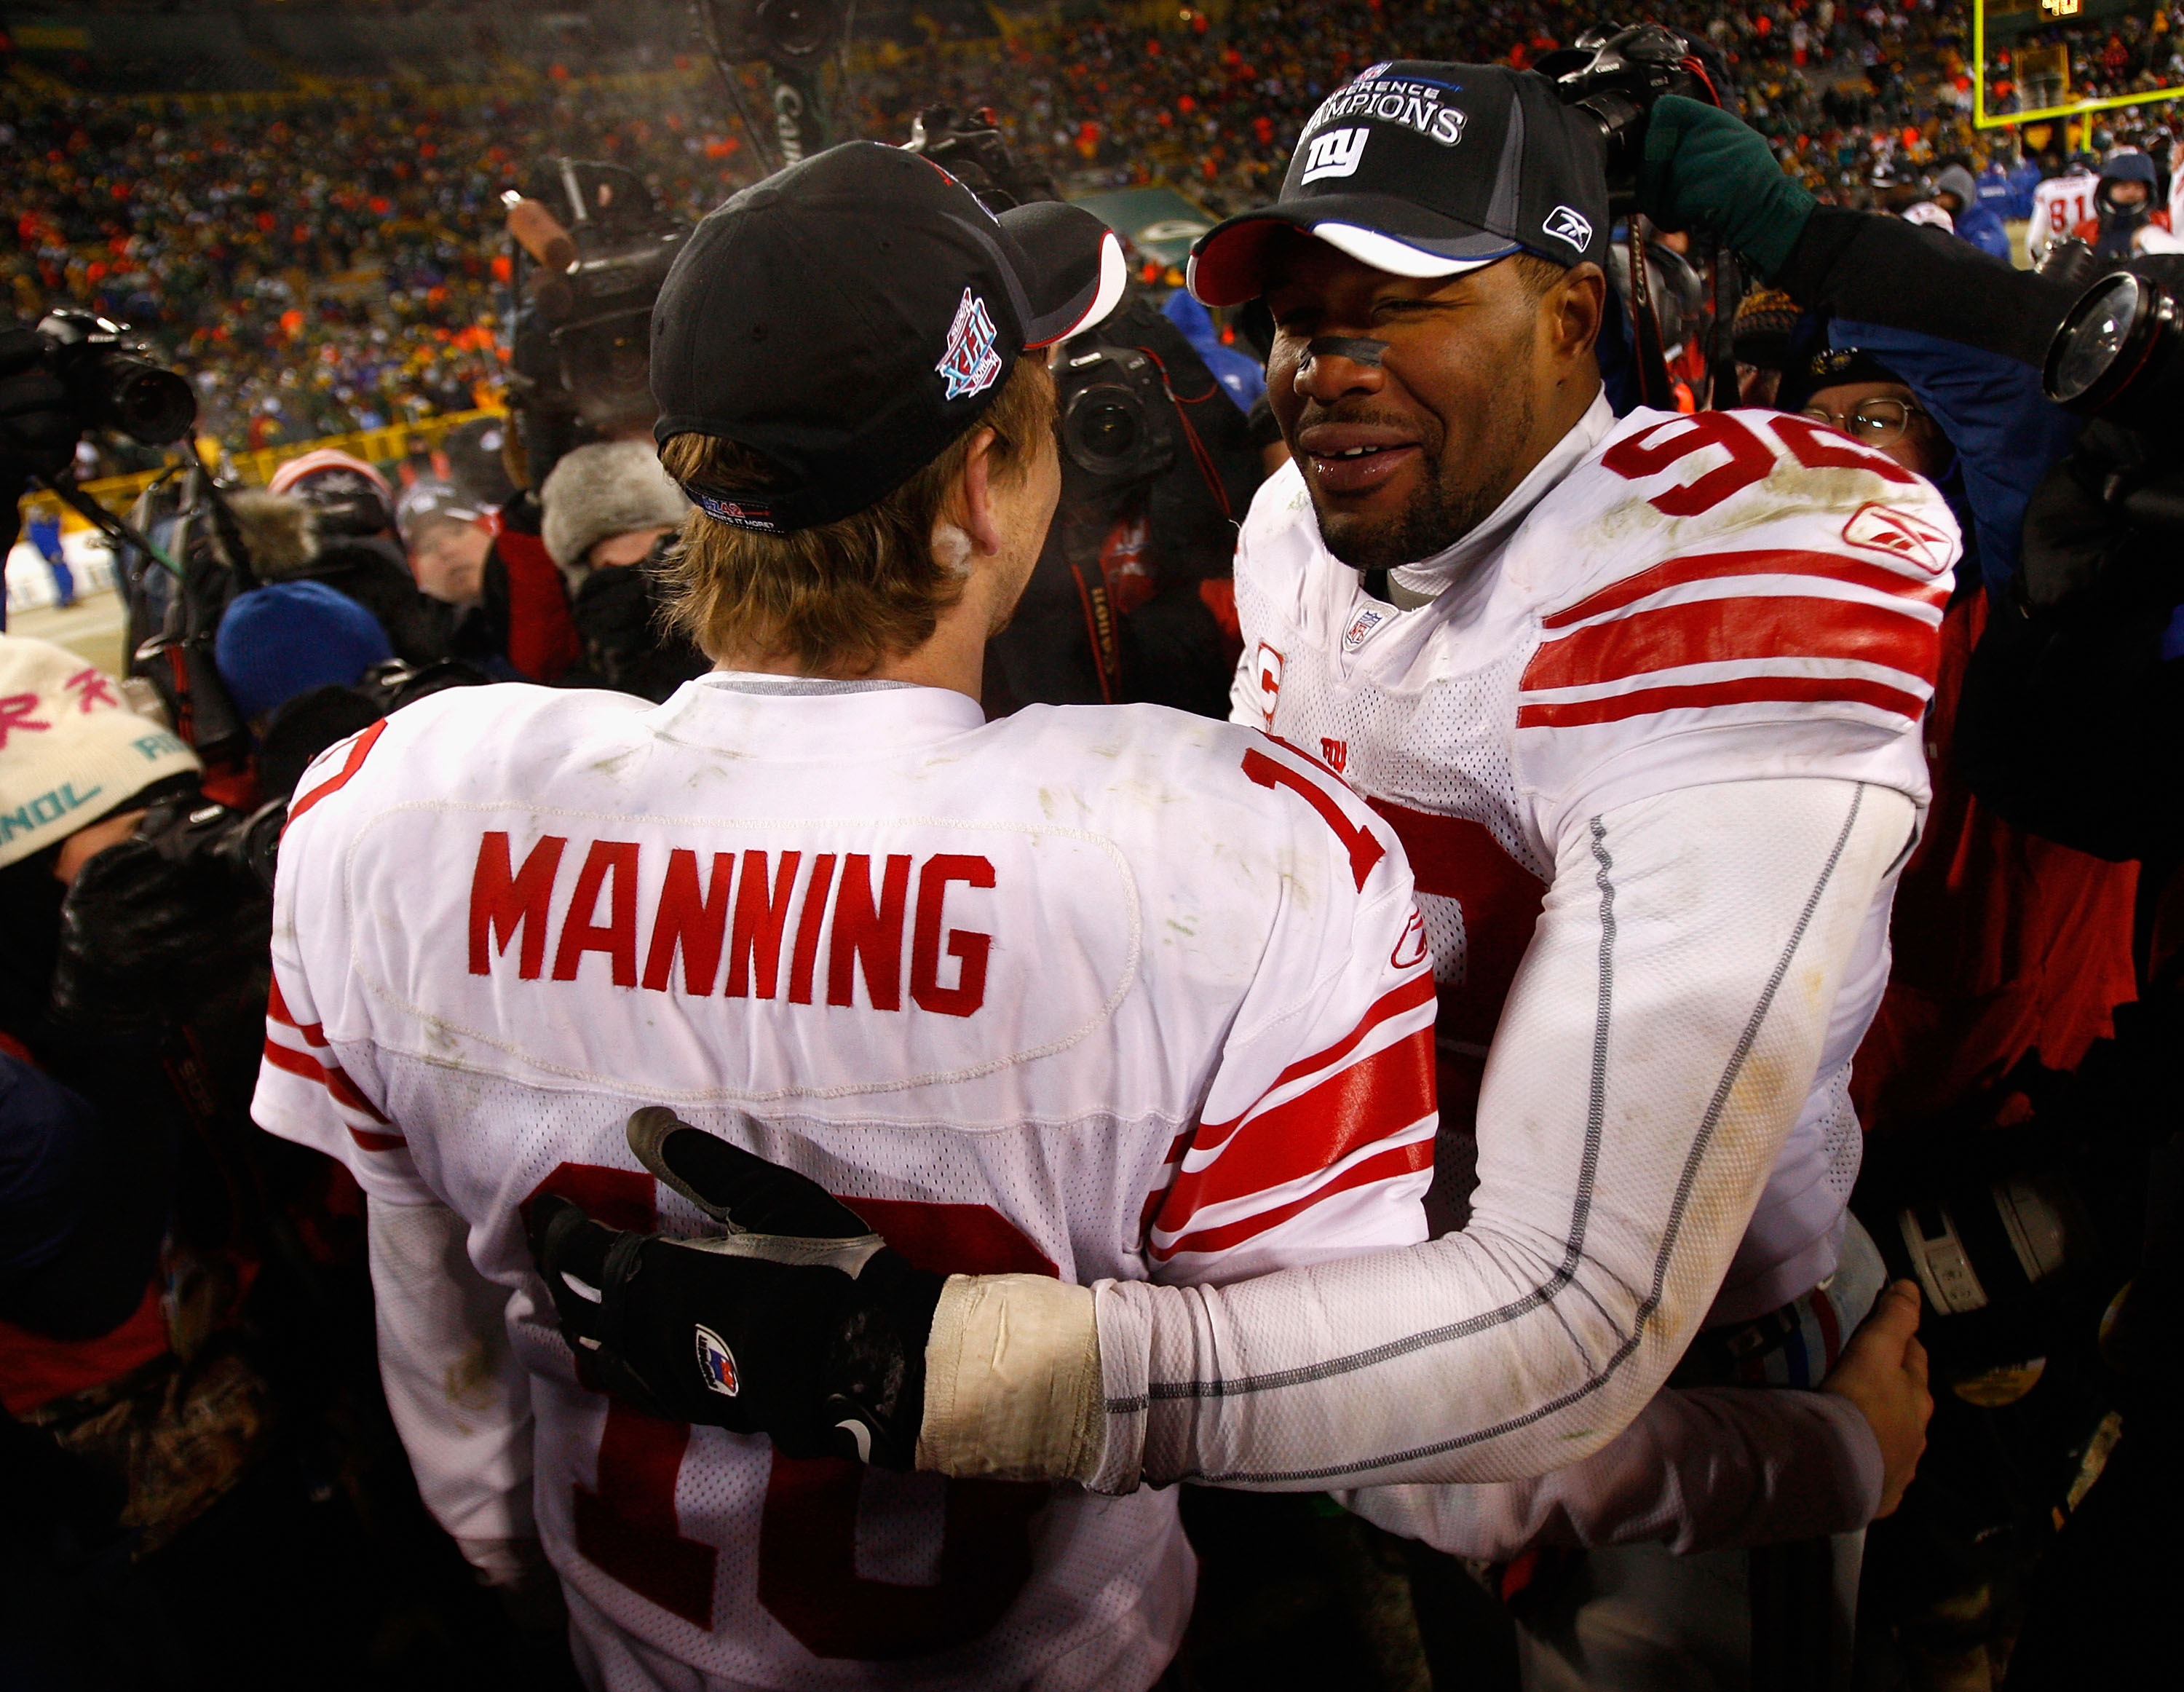 GREEN BAY, WI - JANUARY 20:  Quarterback Eli Manning #10 of the New York Giants celebrates with Michael Strahan #92 after winning the NFC championship game against the Green Bay Packers on January 20, 2008 at Lambeau Field in Green Bay, Wisconsin.   The G